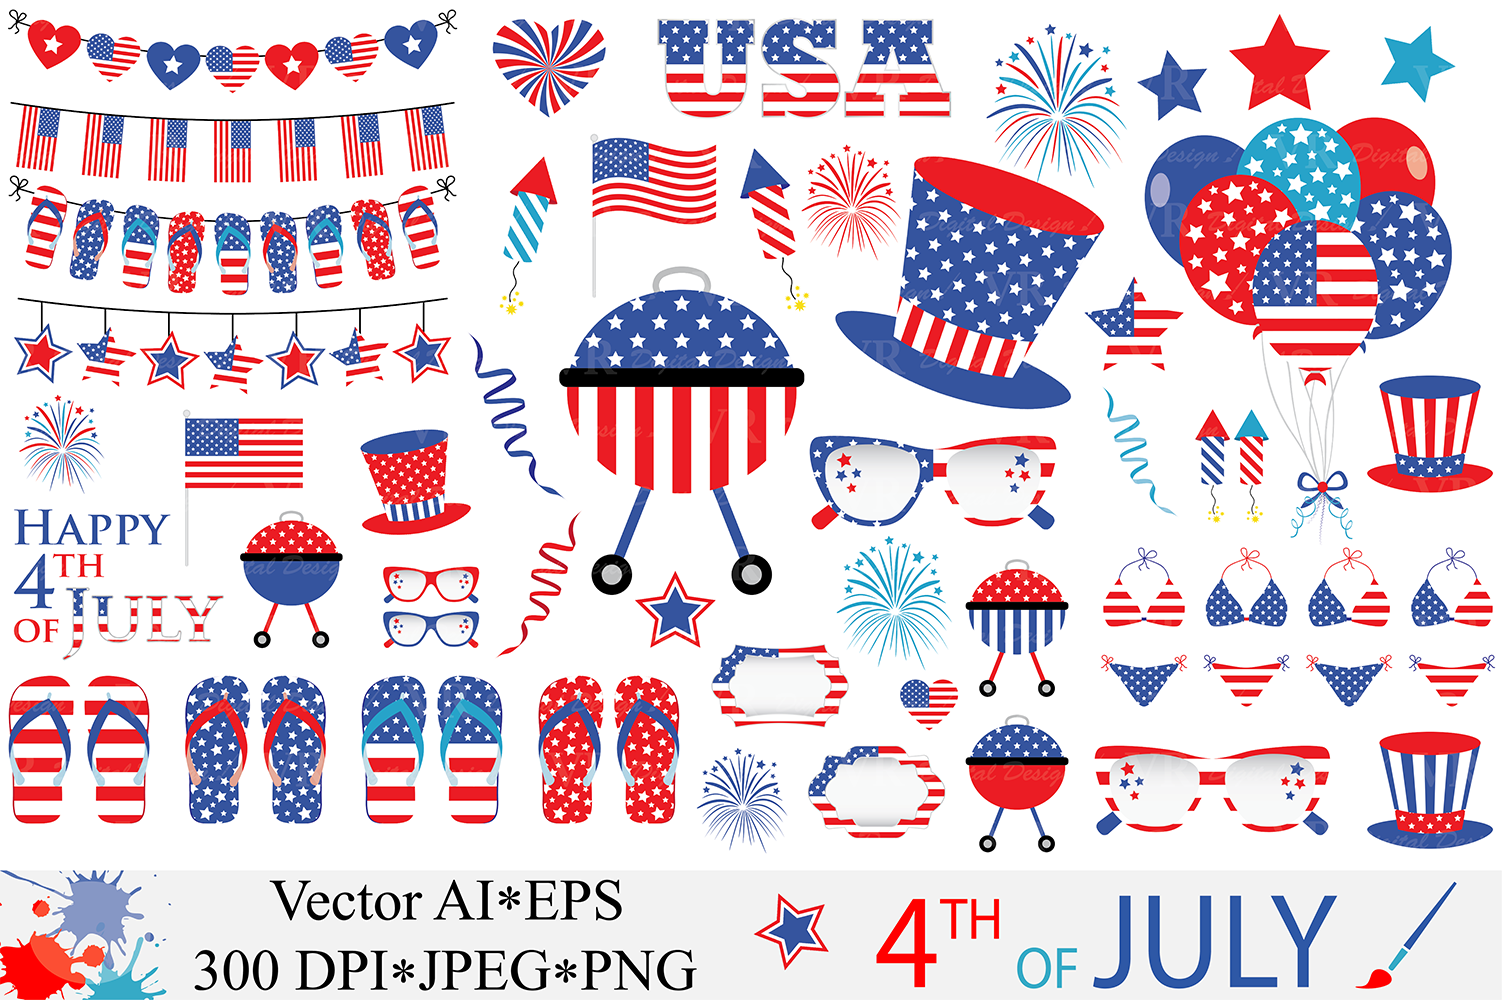 4th of July Clipart Graphic by VR Digital Design.